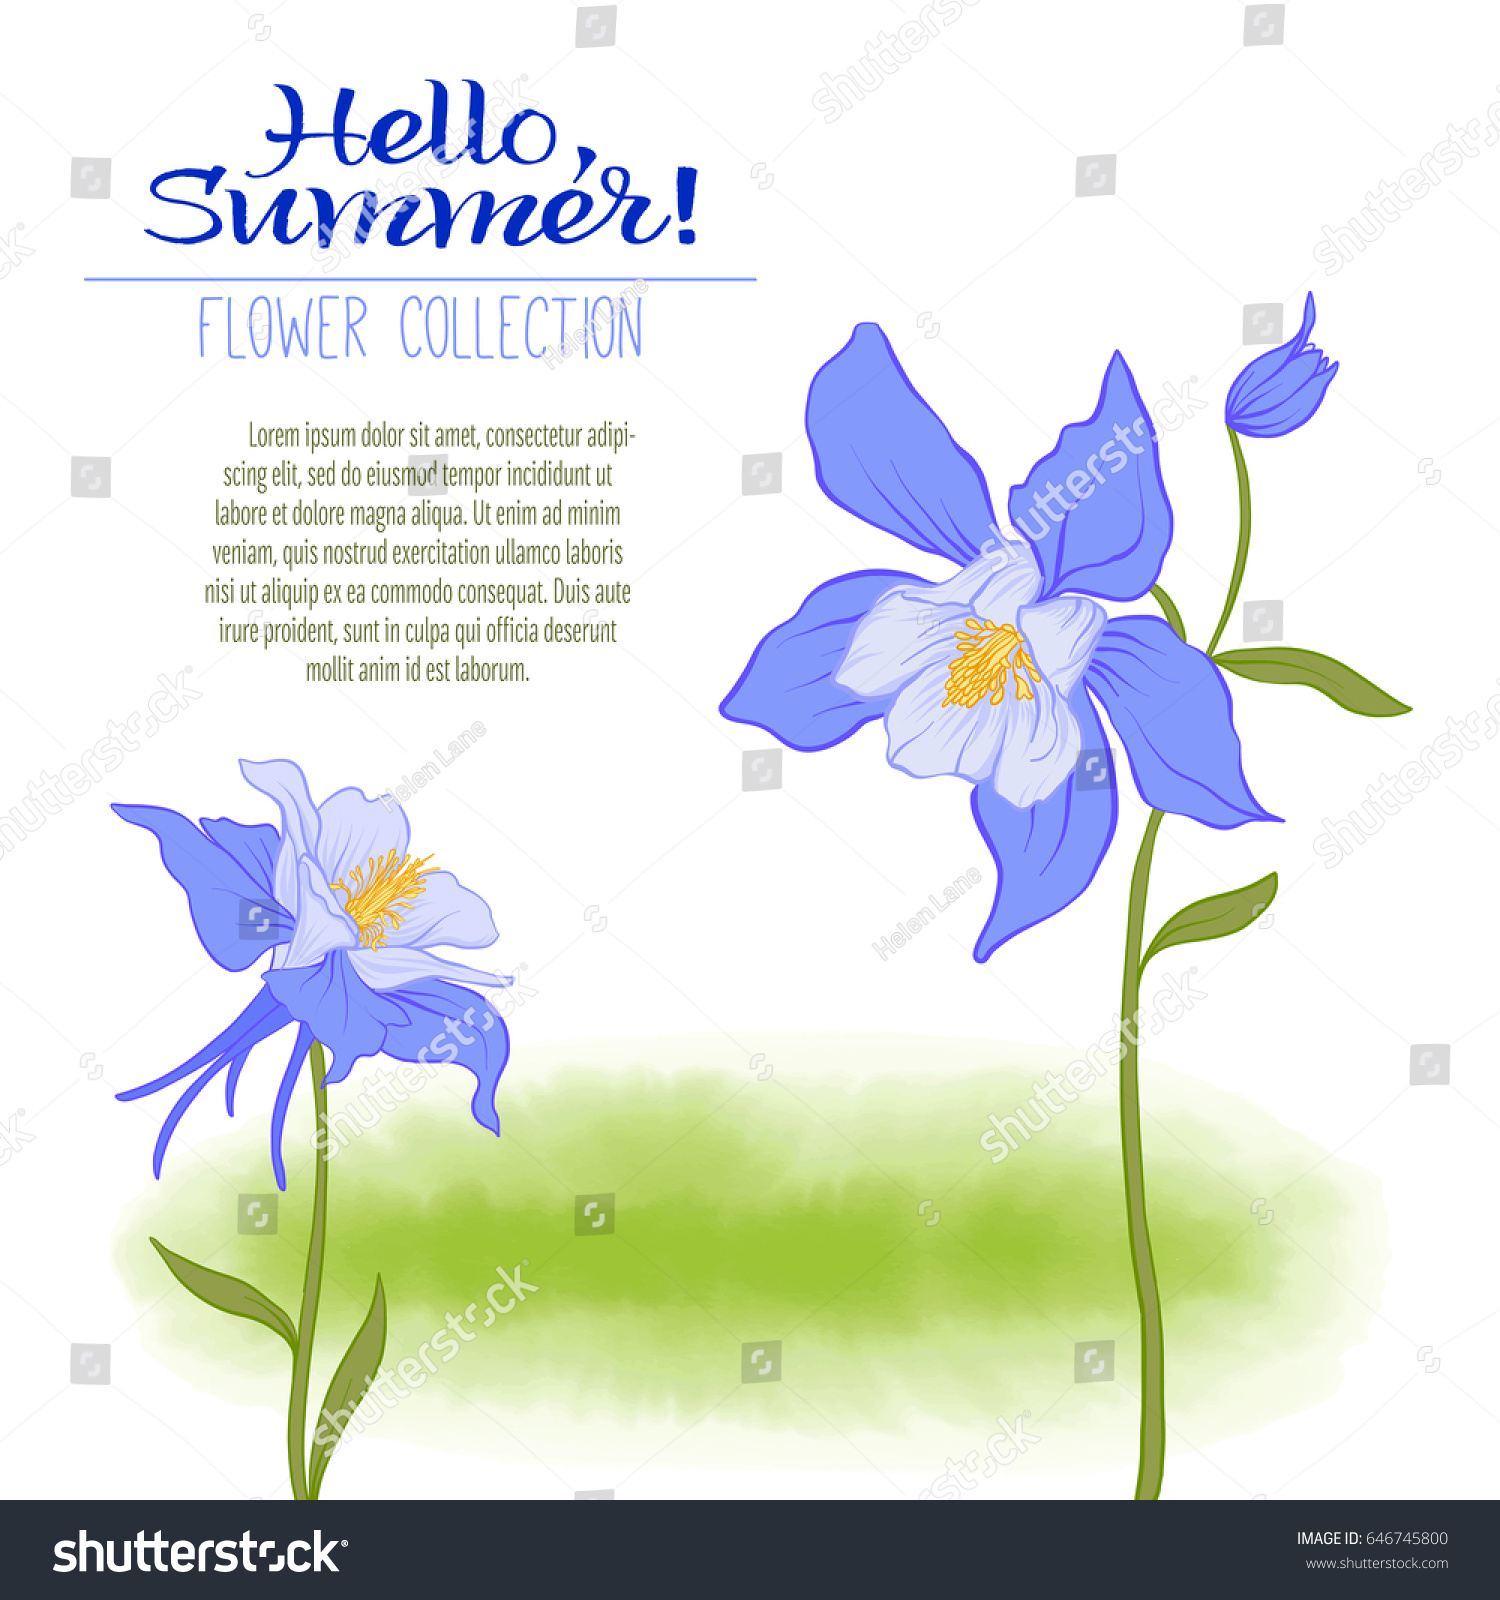 Columbine flower on green watercolor background stock vector a columbine flower on a green watercolor background the flowers in the botanical style izmirmasajfo